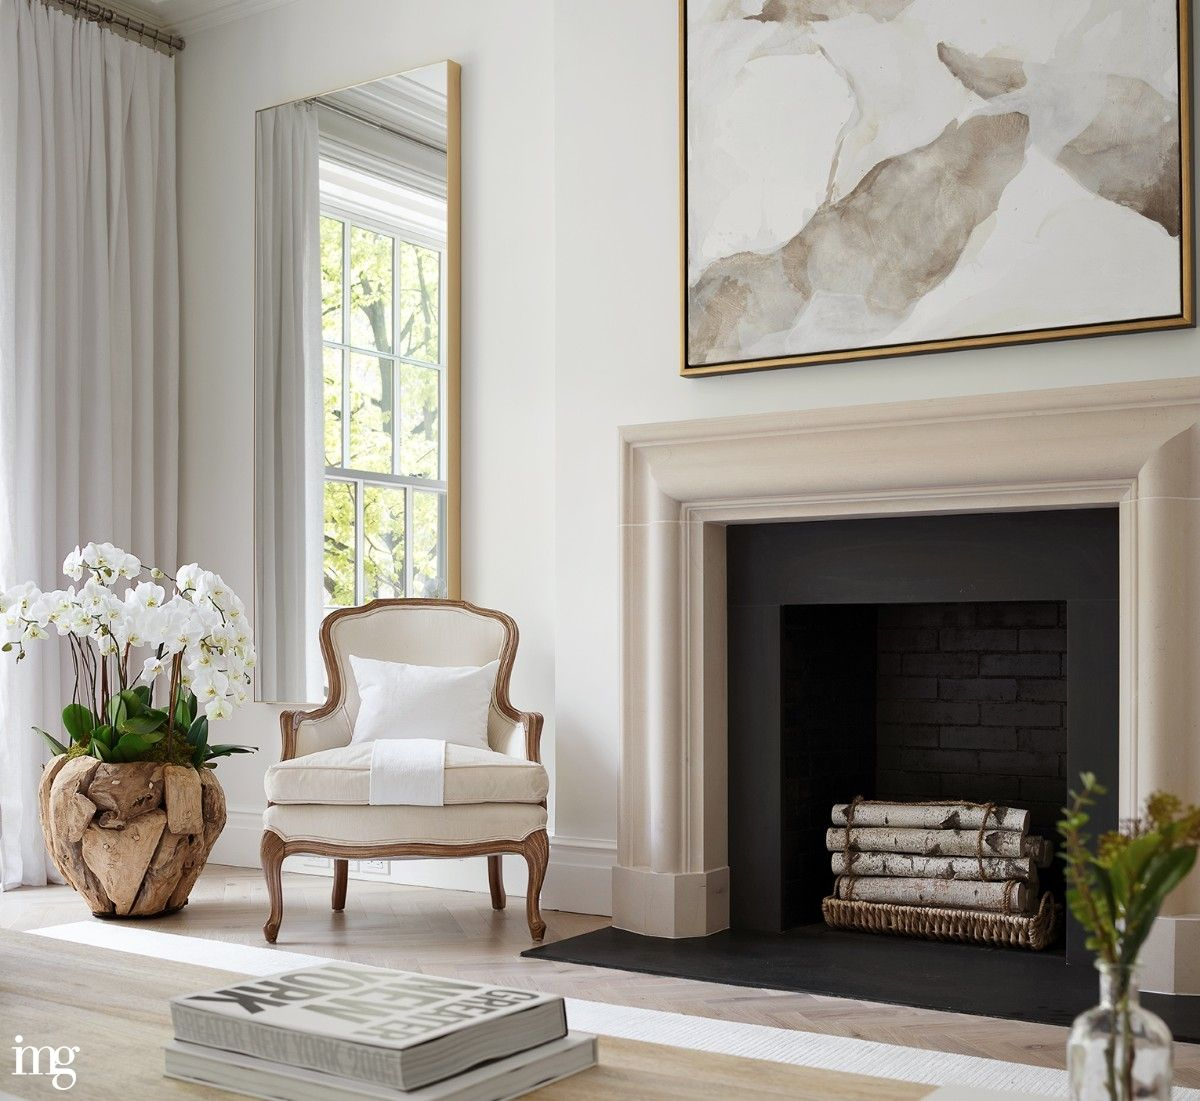 Interior Design Home Staging: New York Staging Company Interior Marketing Group